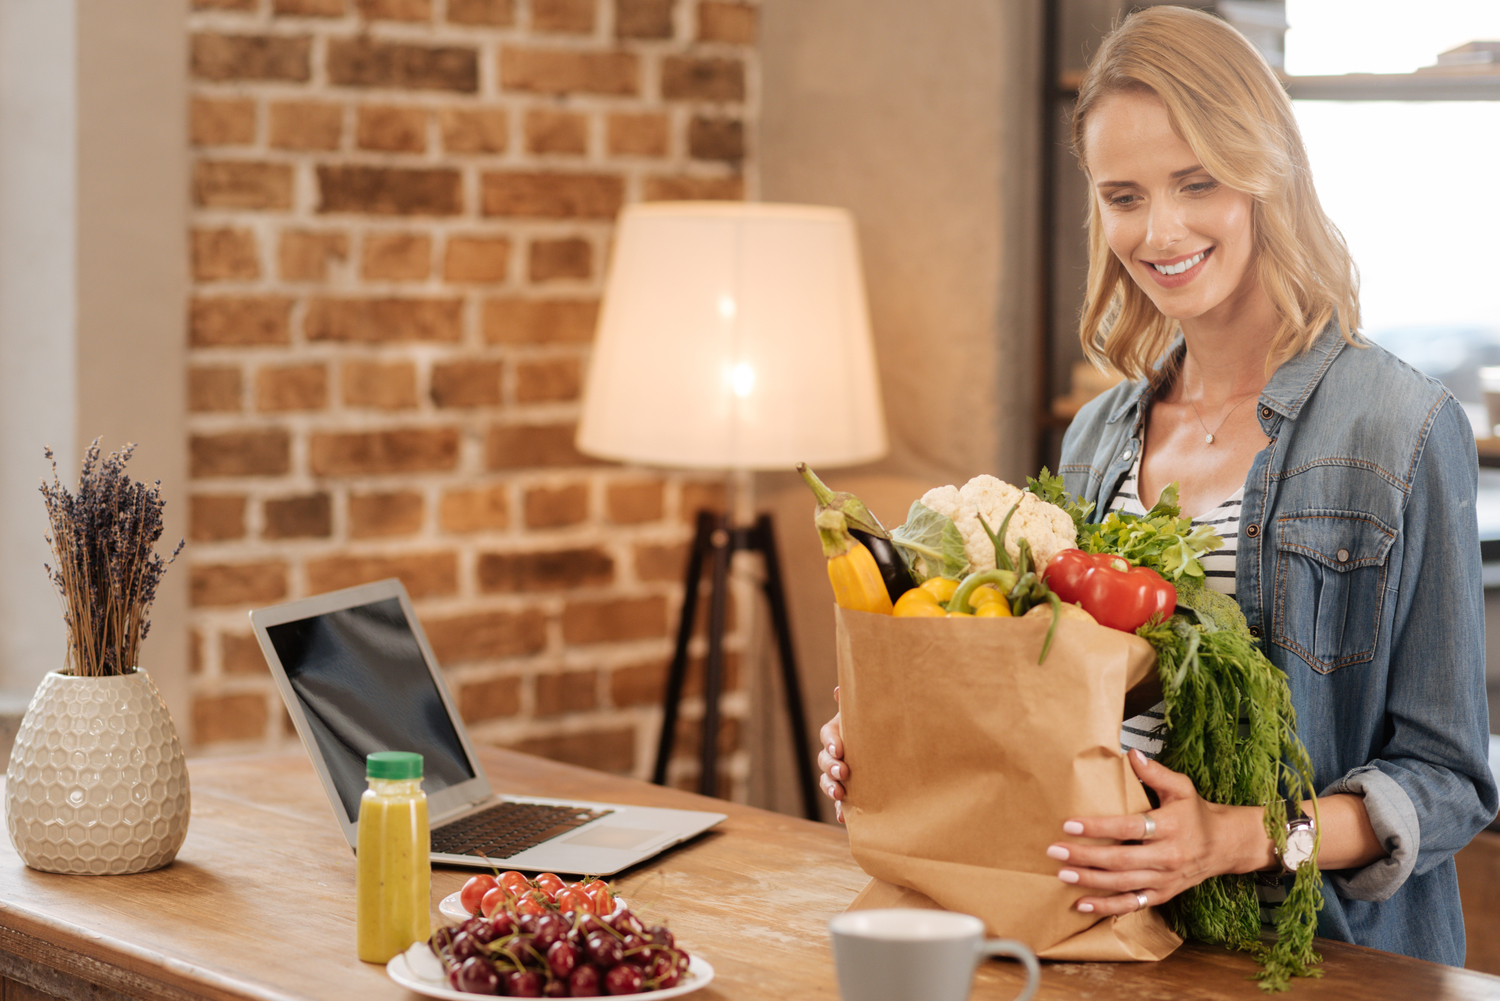 7 Advantages Of Getting A Meal Delivery Service